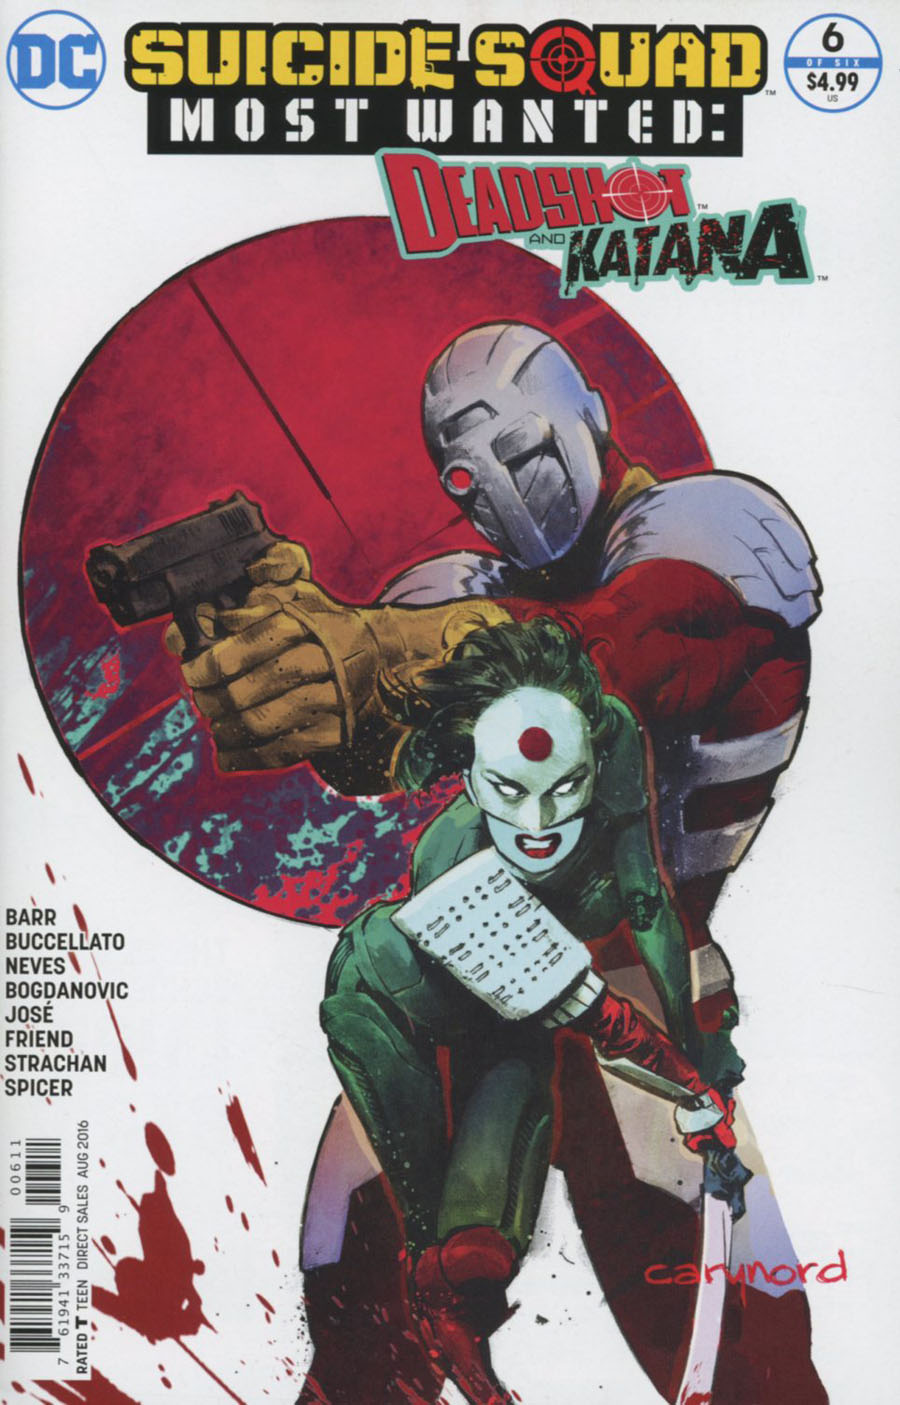 Suicide Squad Most Wanted Deadshot Katana #6